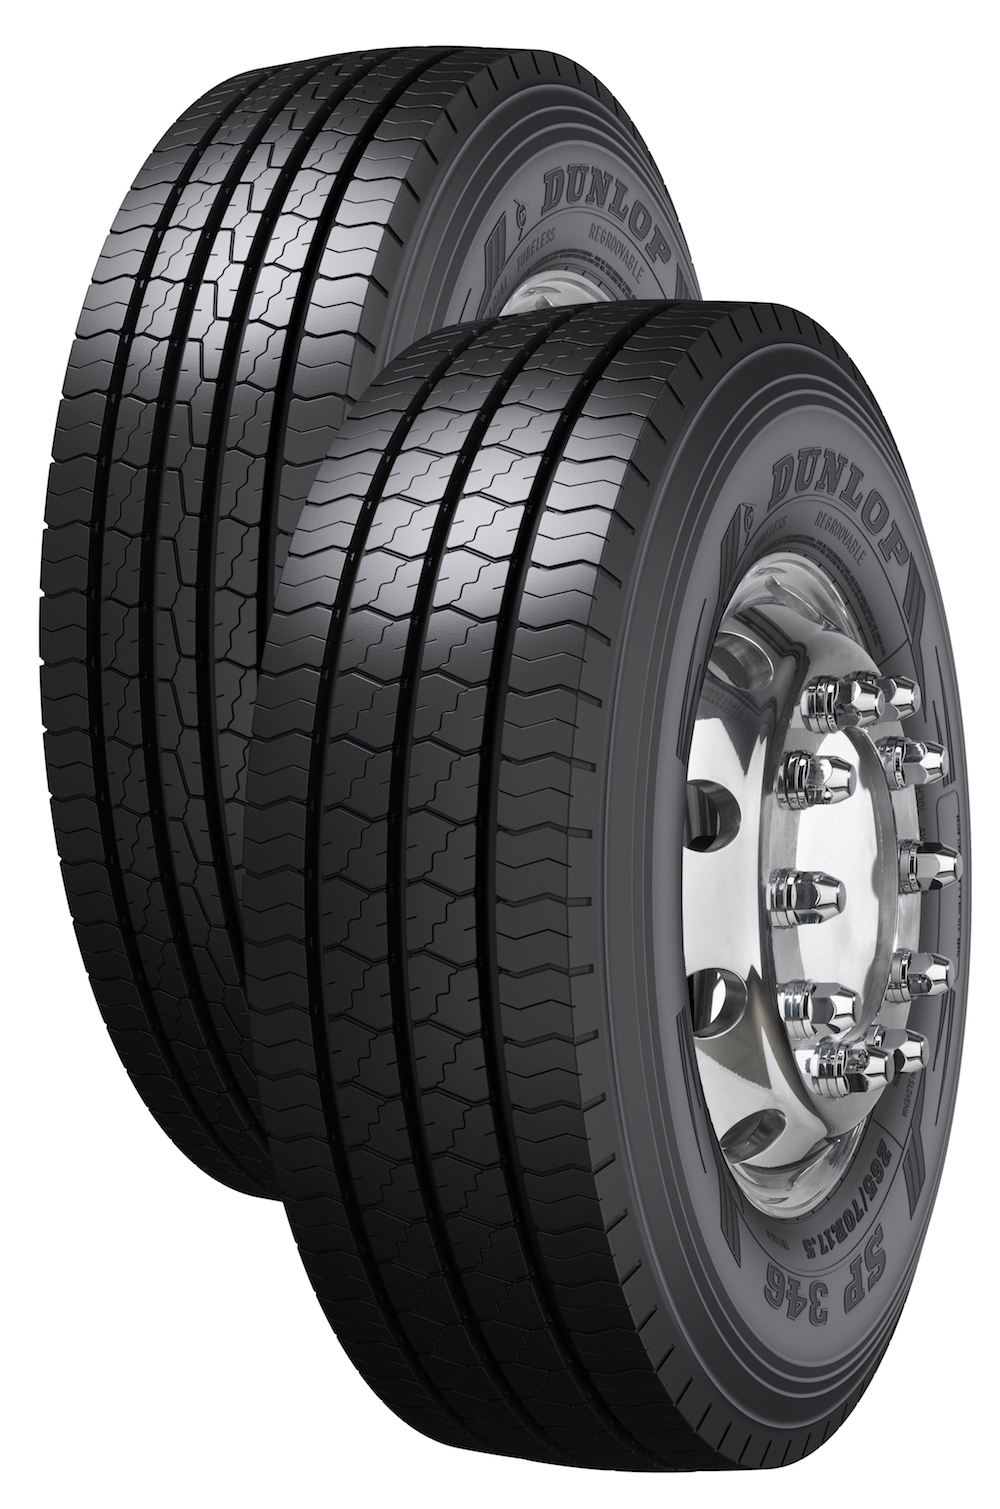 Dunlop to launch new truck tyre range